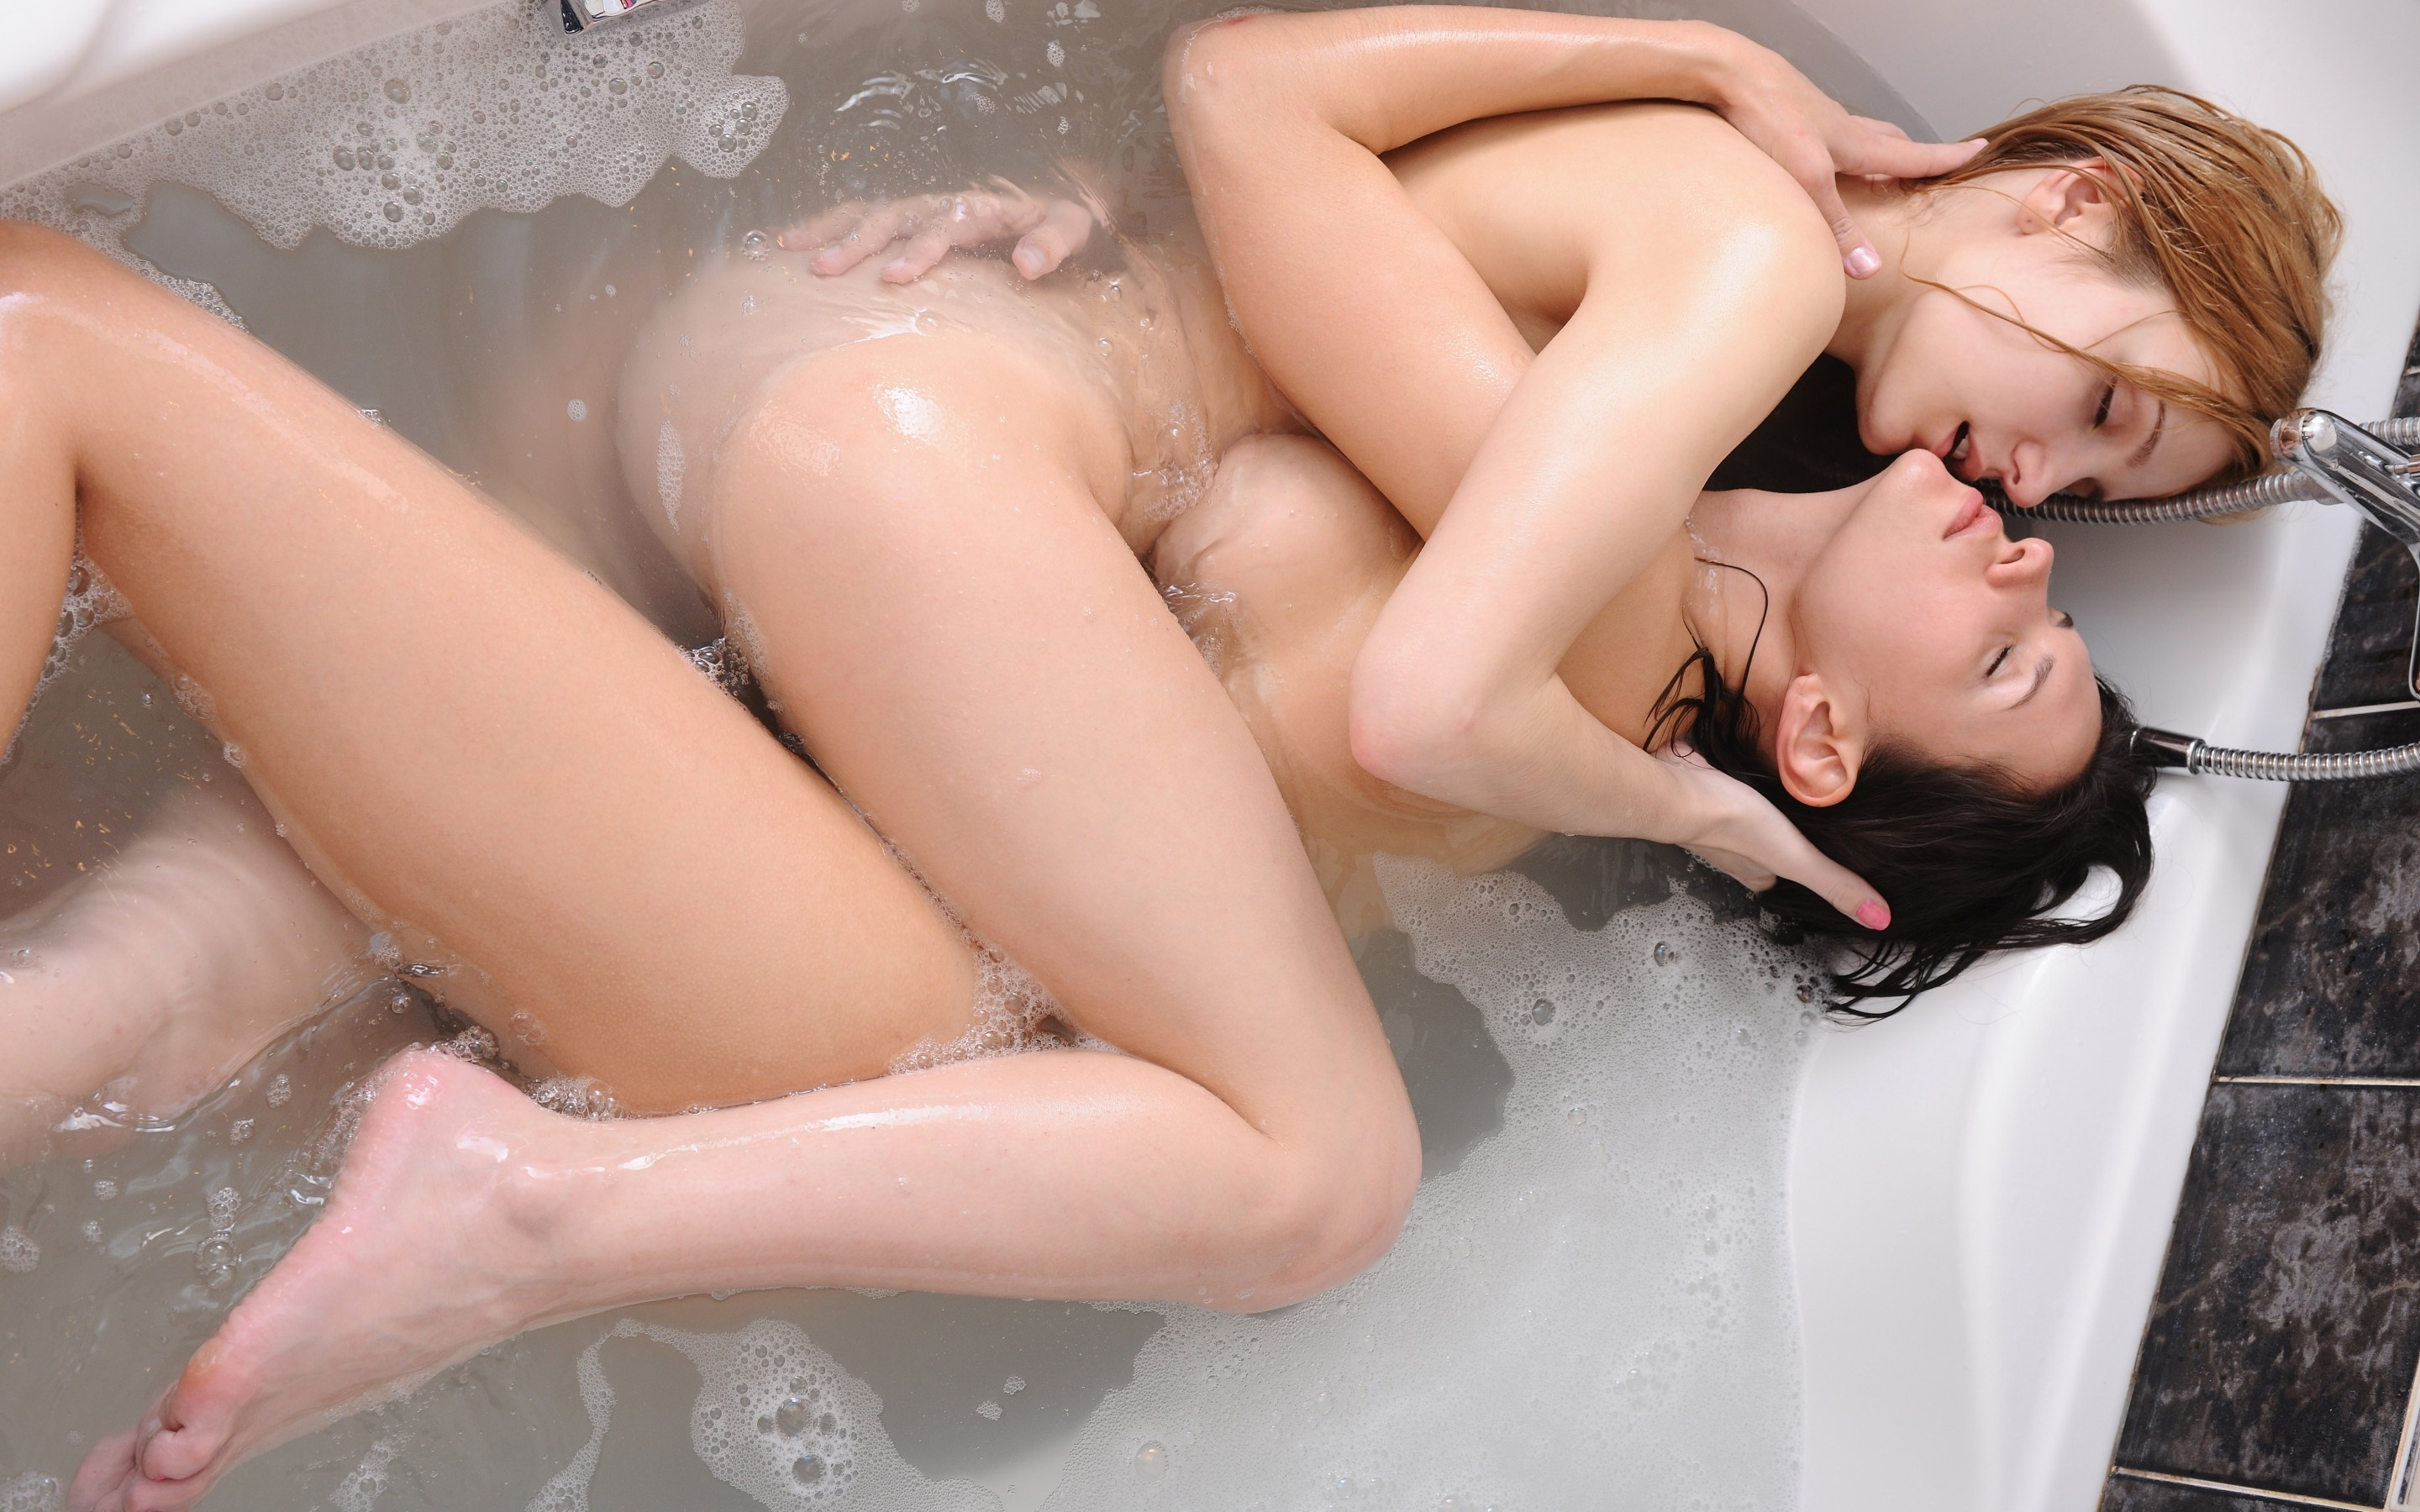 Wallpaper Girls, Nude, Love, Passion, Sex, Bath, Water -4307